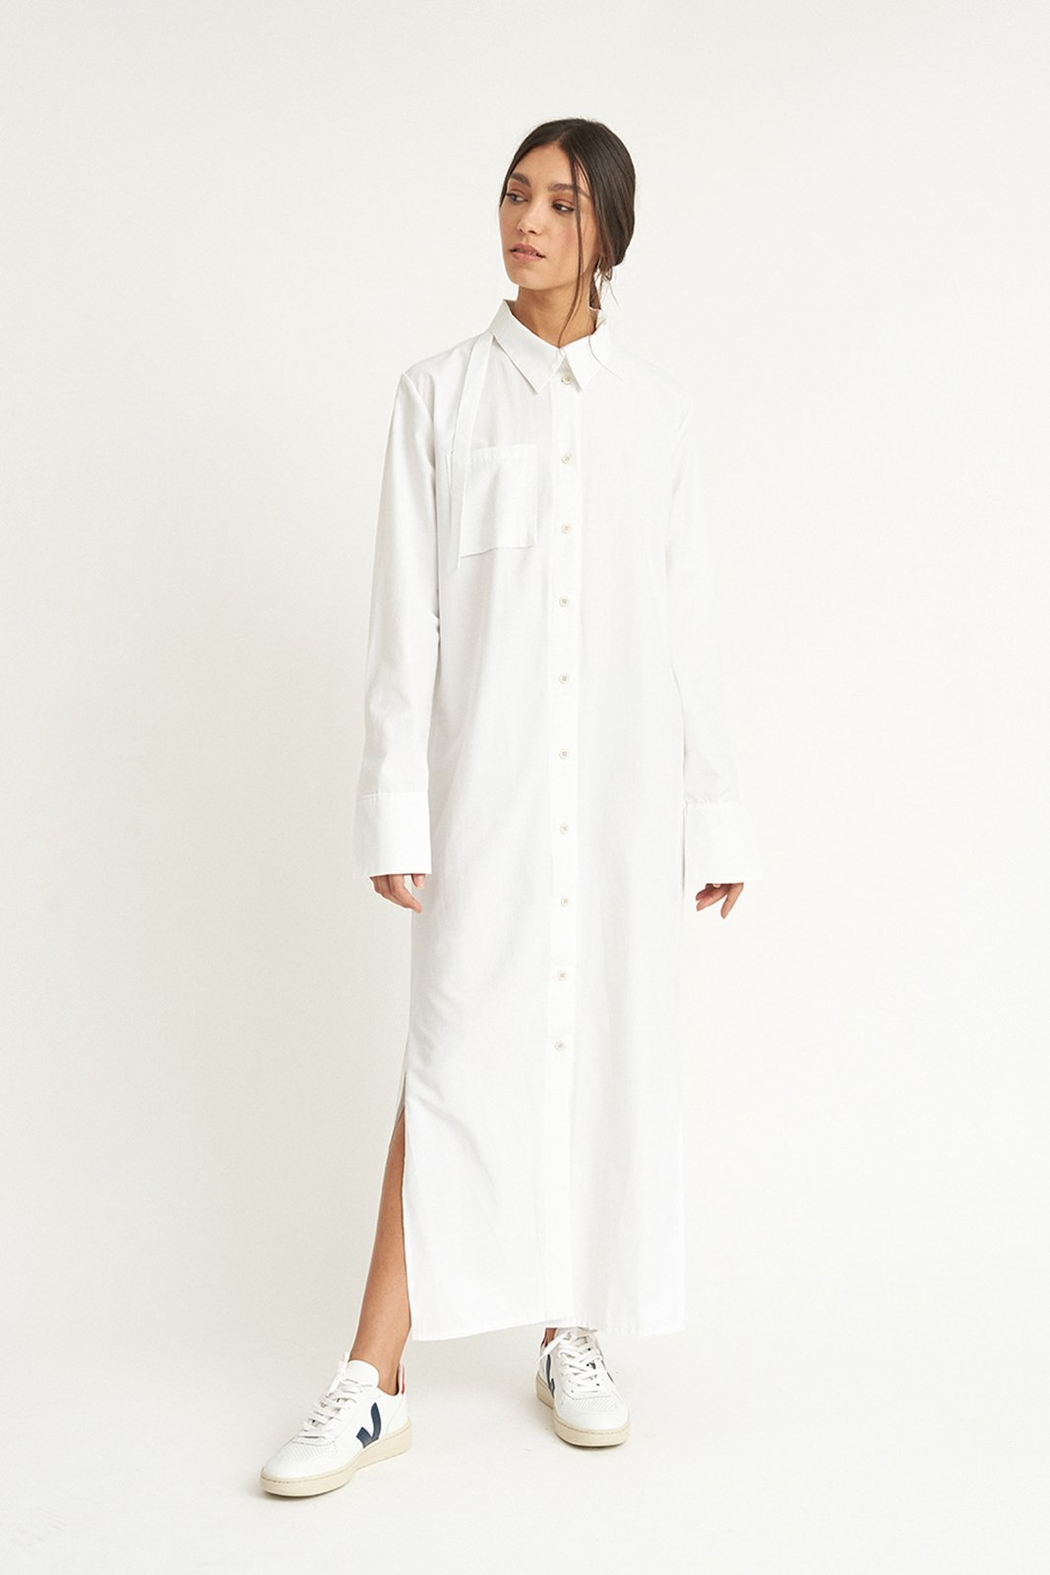 WYLDE Sophie White Shirt Dress - Front Cropped Image